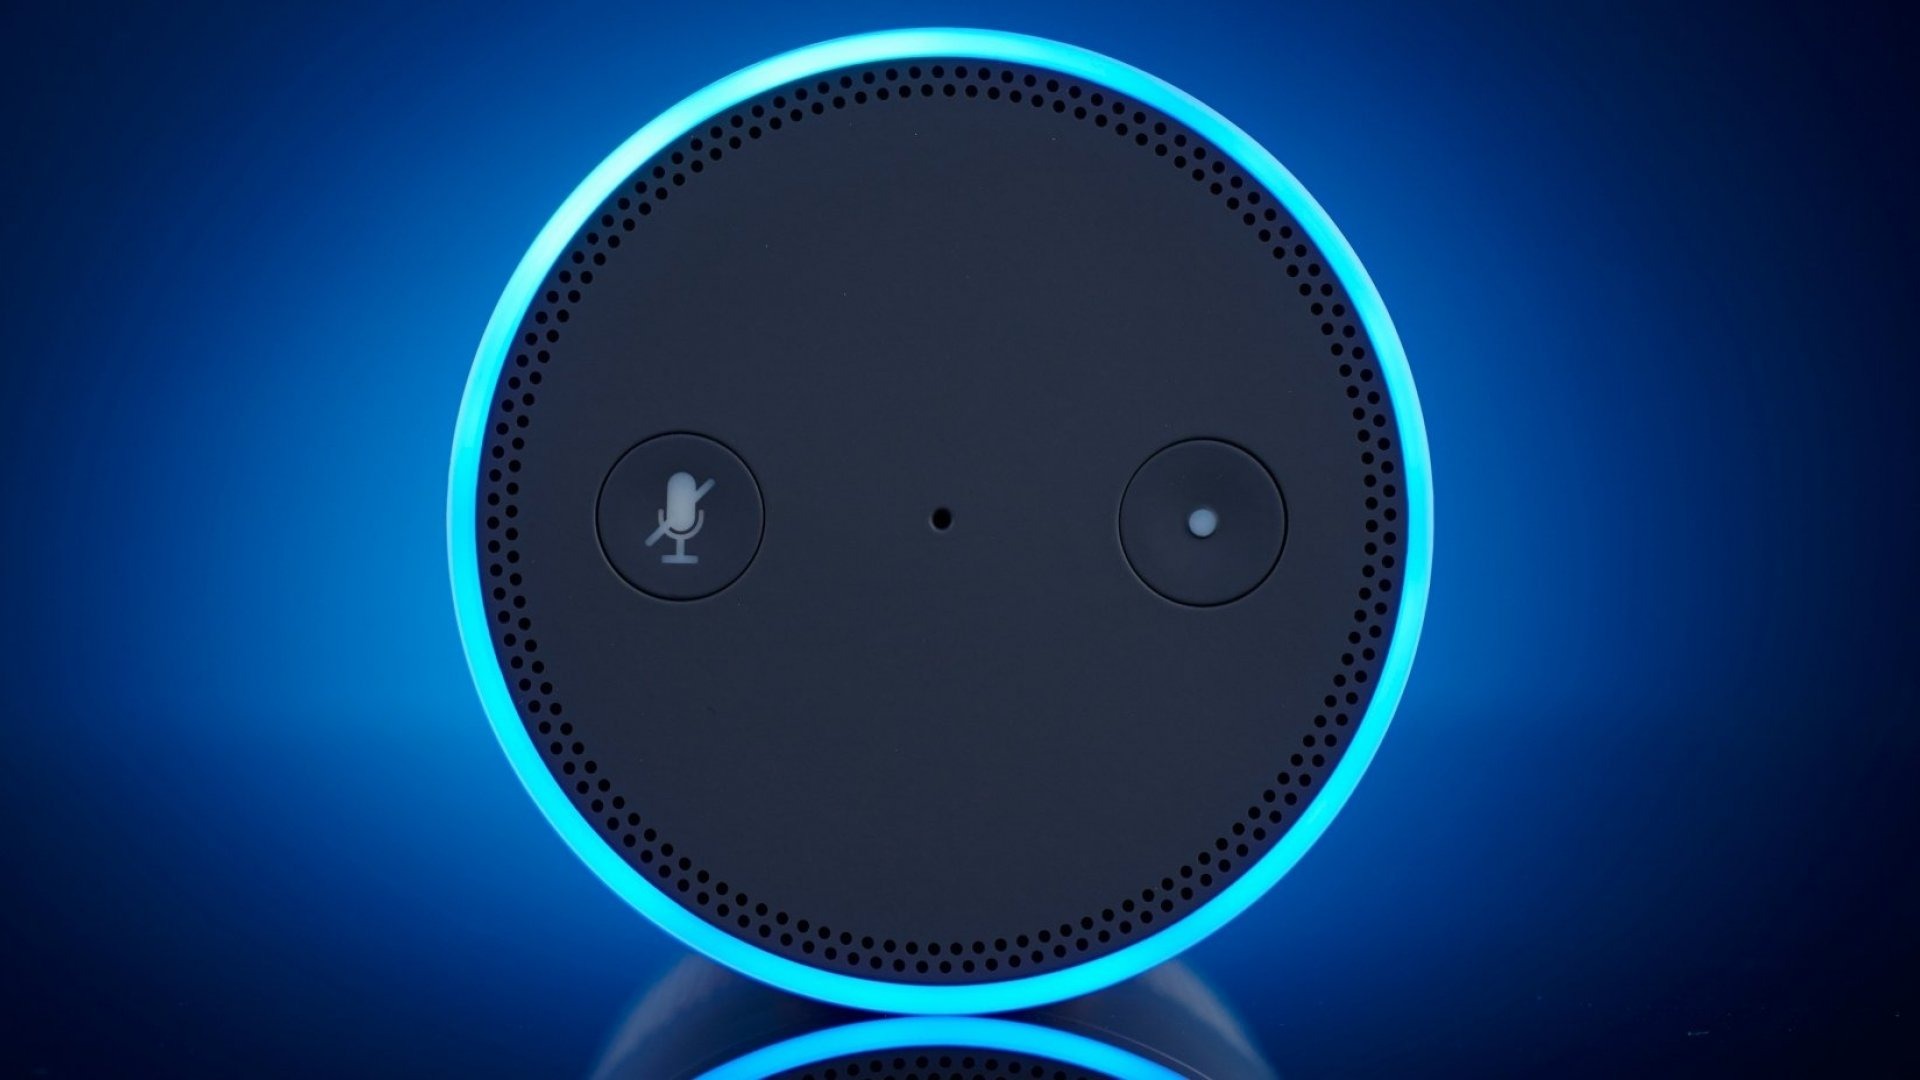 Here's How to Stop 'Human Review' of Your Amazon Alexa Interactions (Apple and Google, Too)